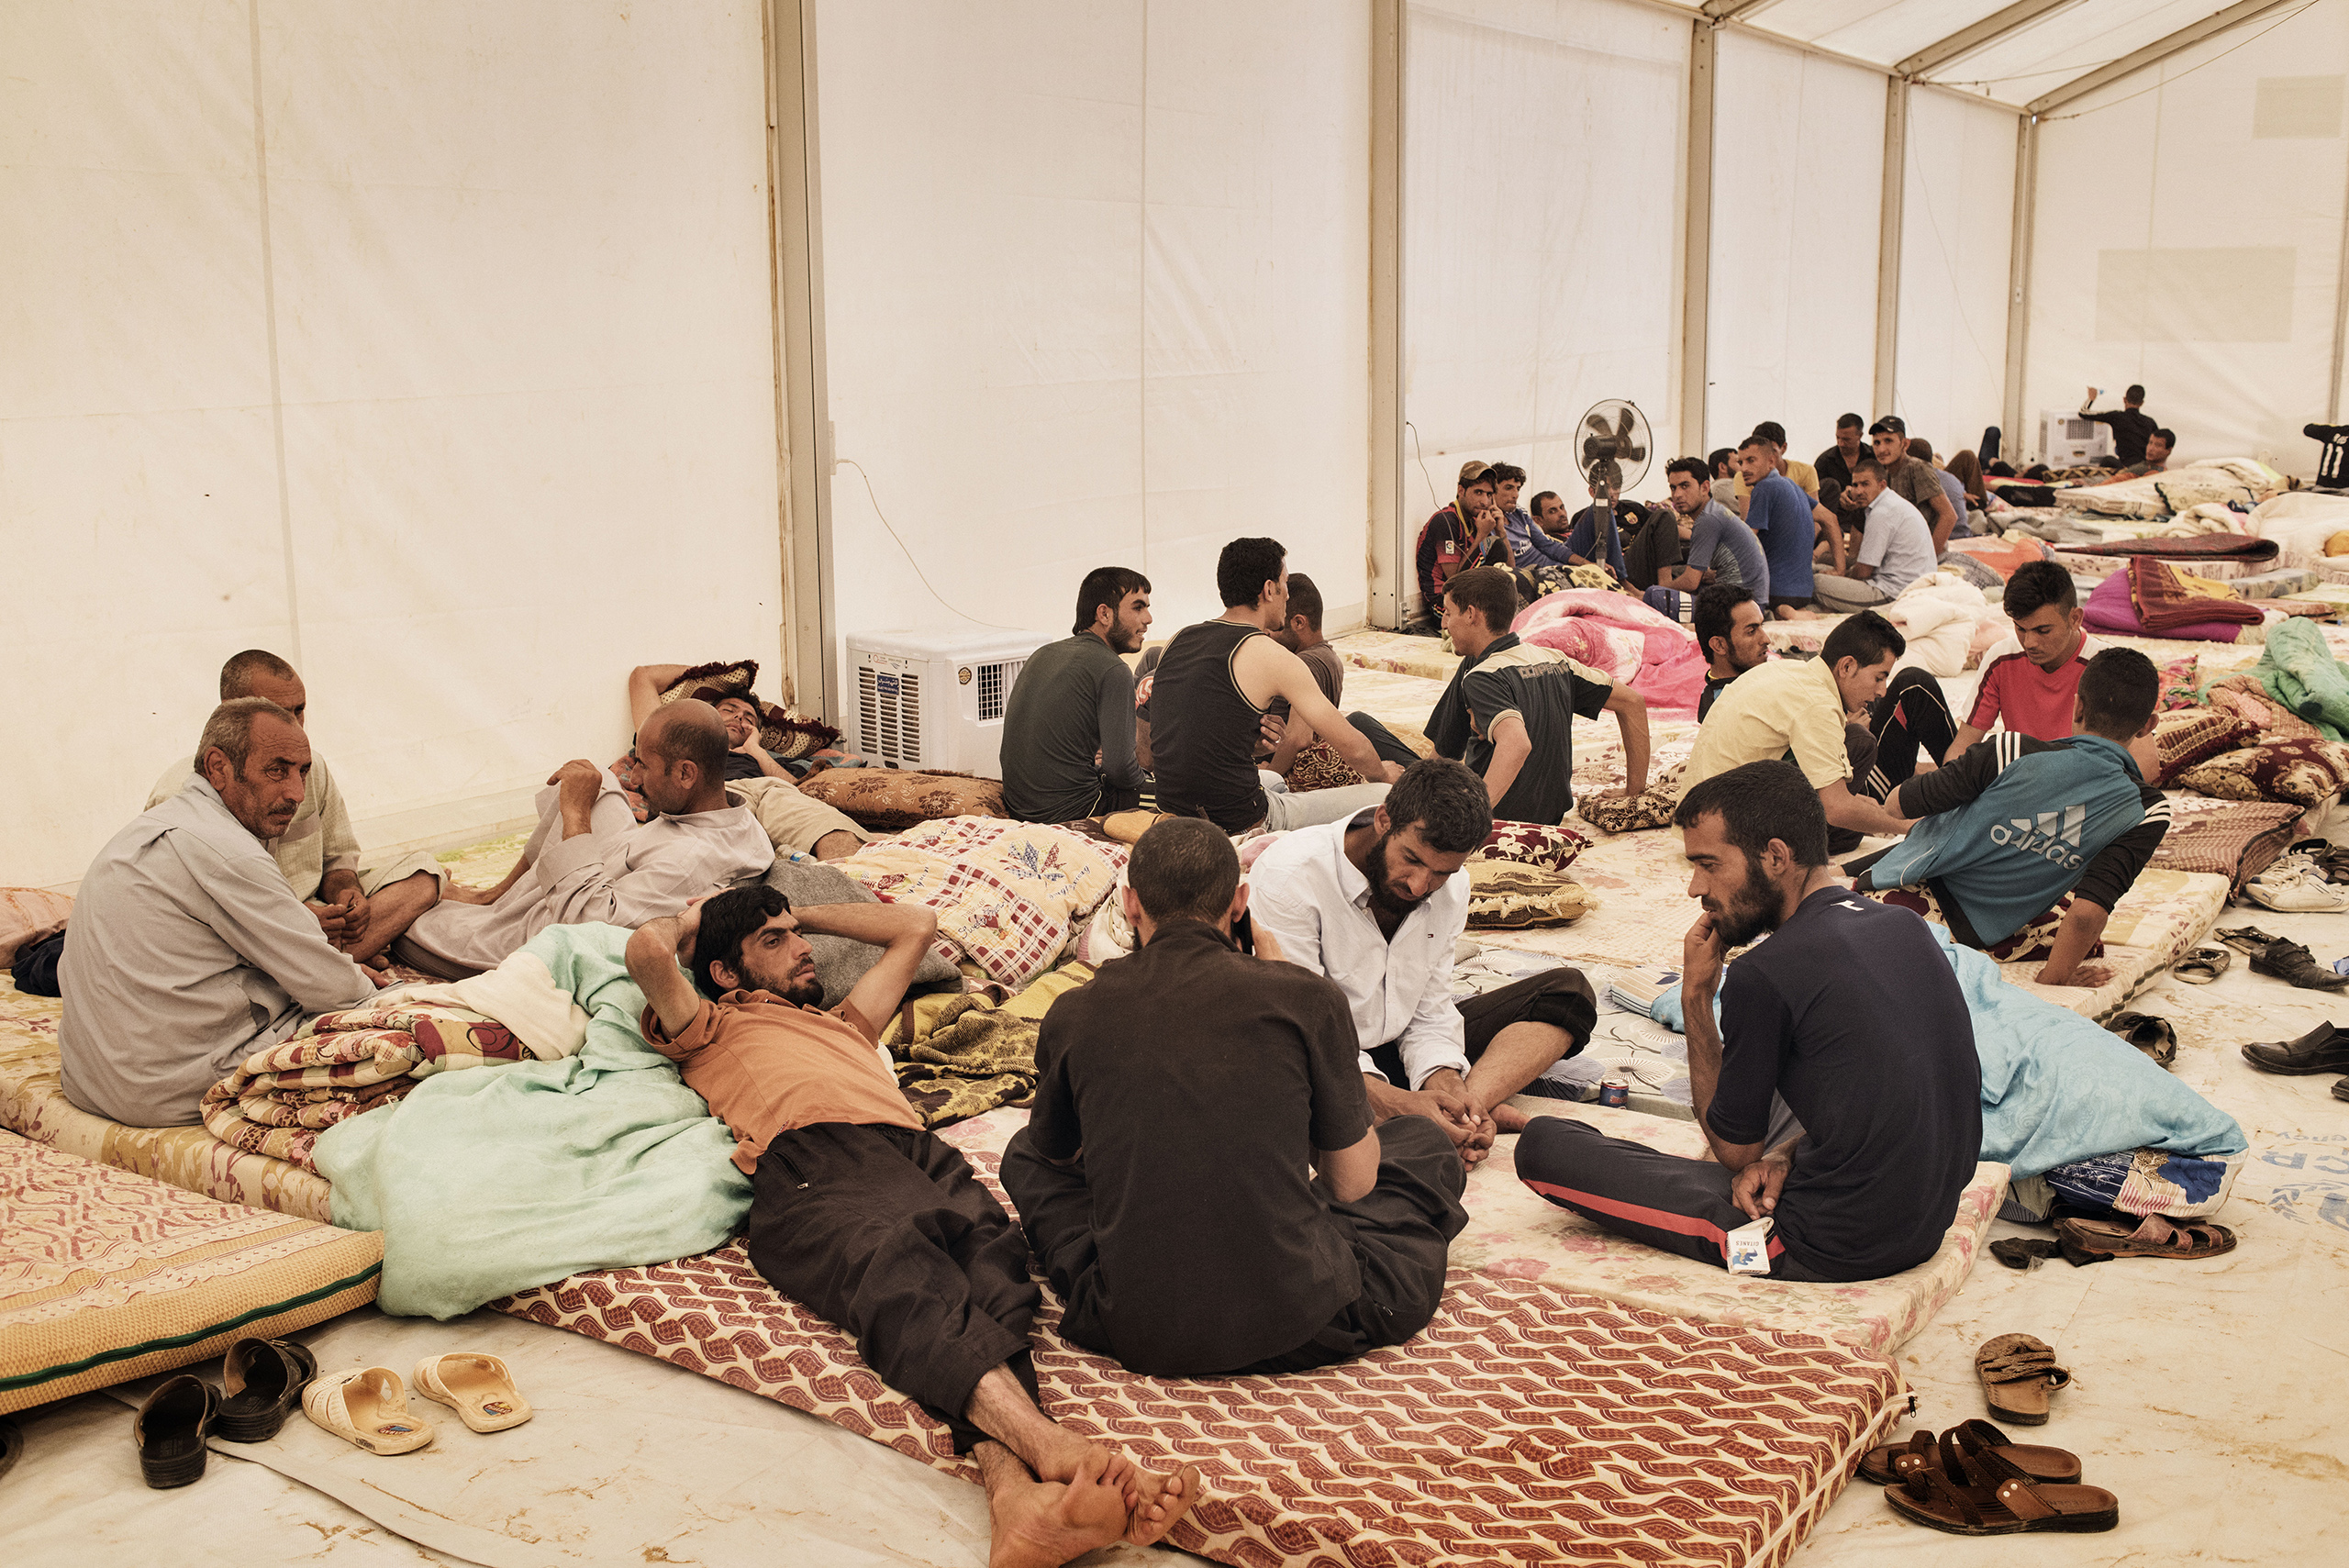 Men sit and lay down in a tent at a camp for displaced families near the Iraqi town of Makhmour, in northern Iraq, May 13, 2016.